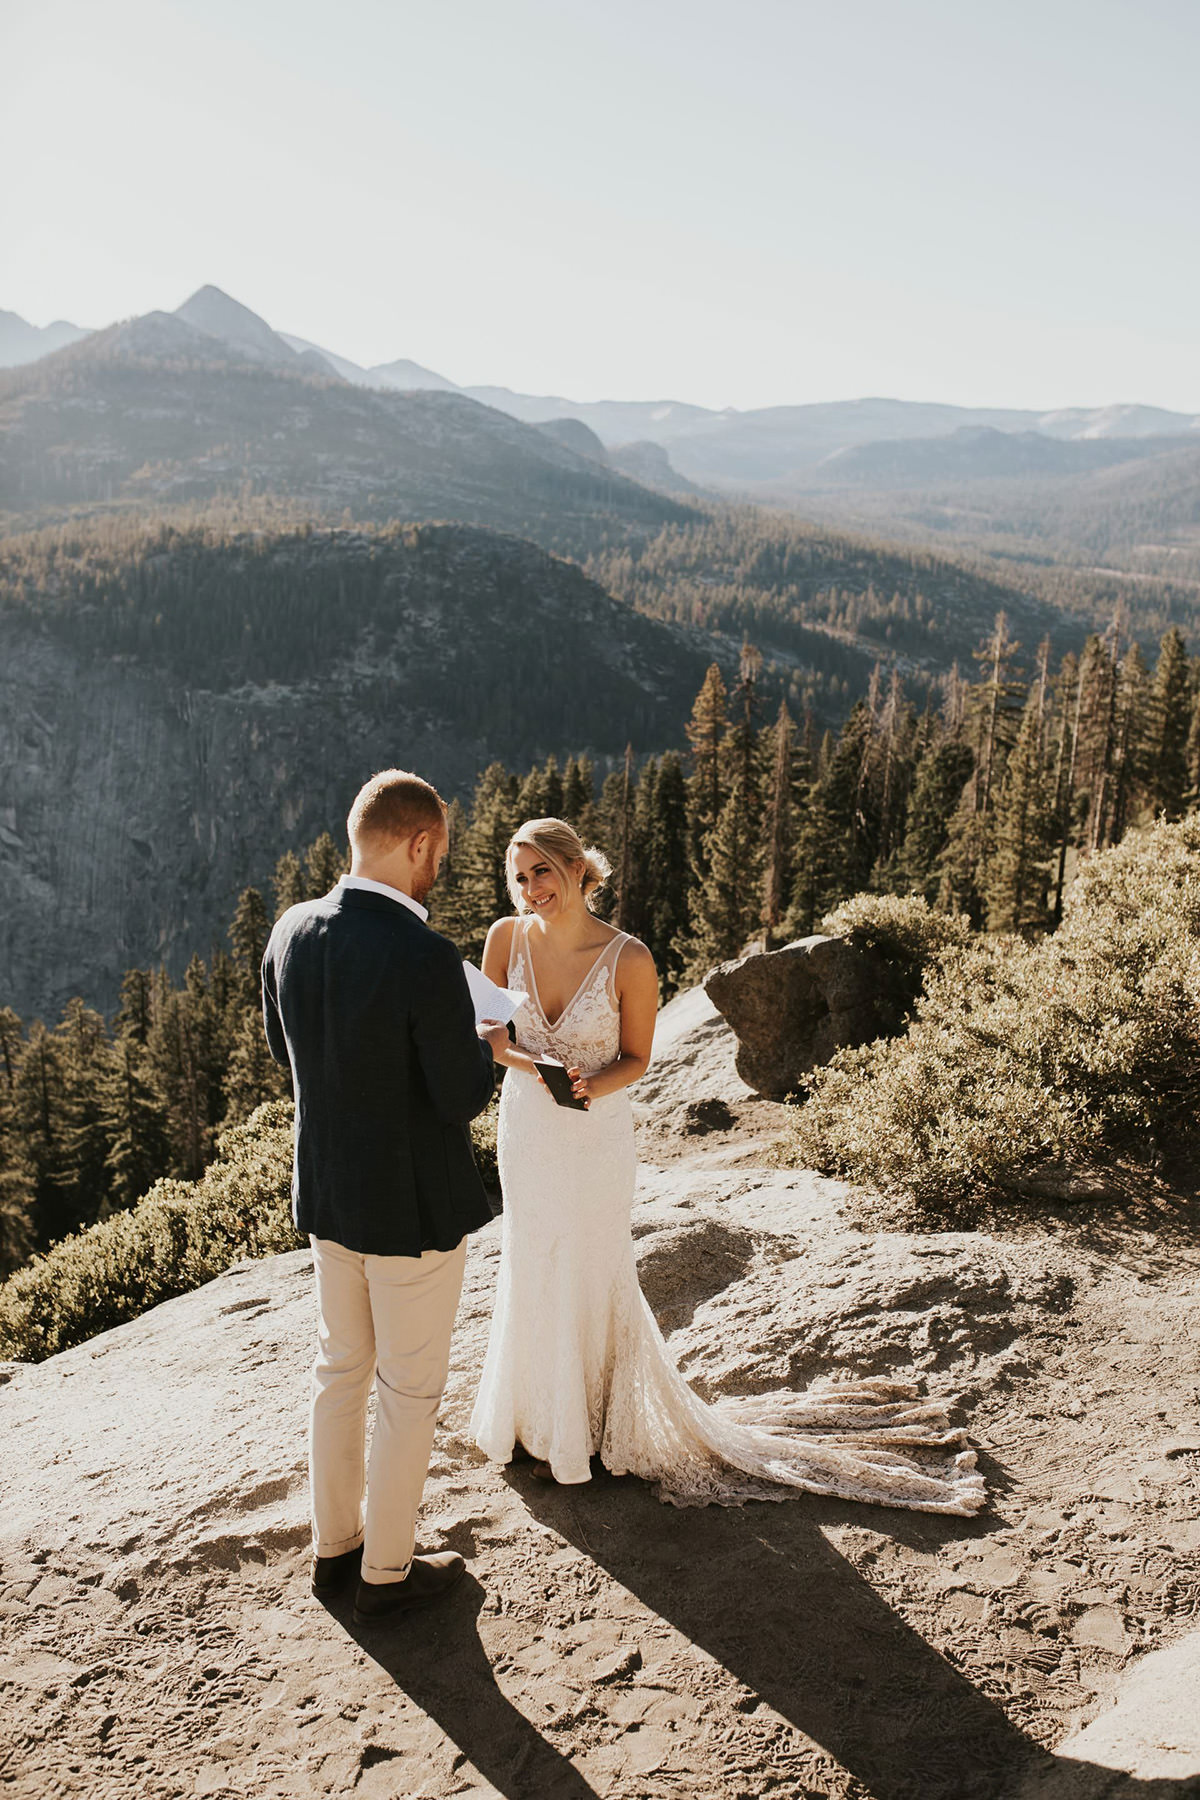 A Breathtaking Elopement In The Yosemite National Park